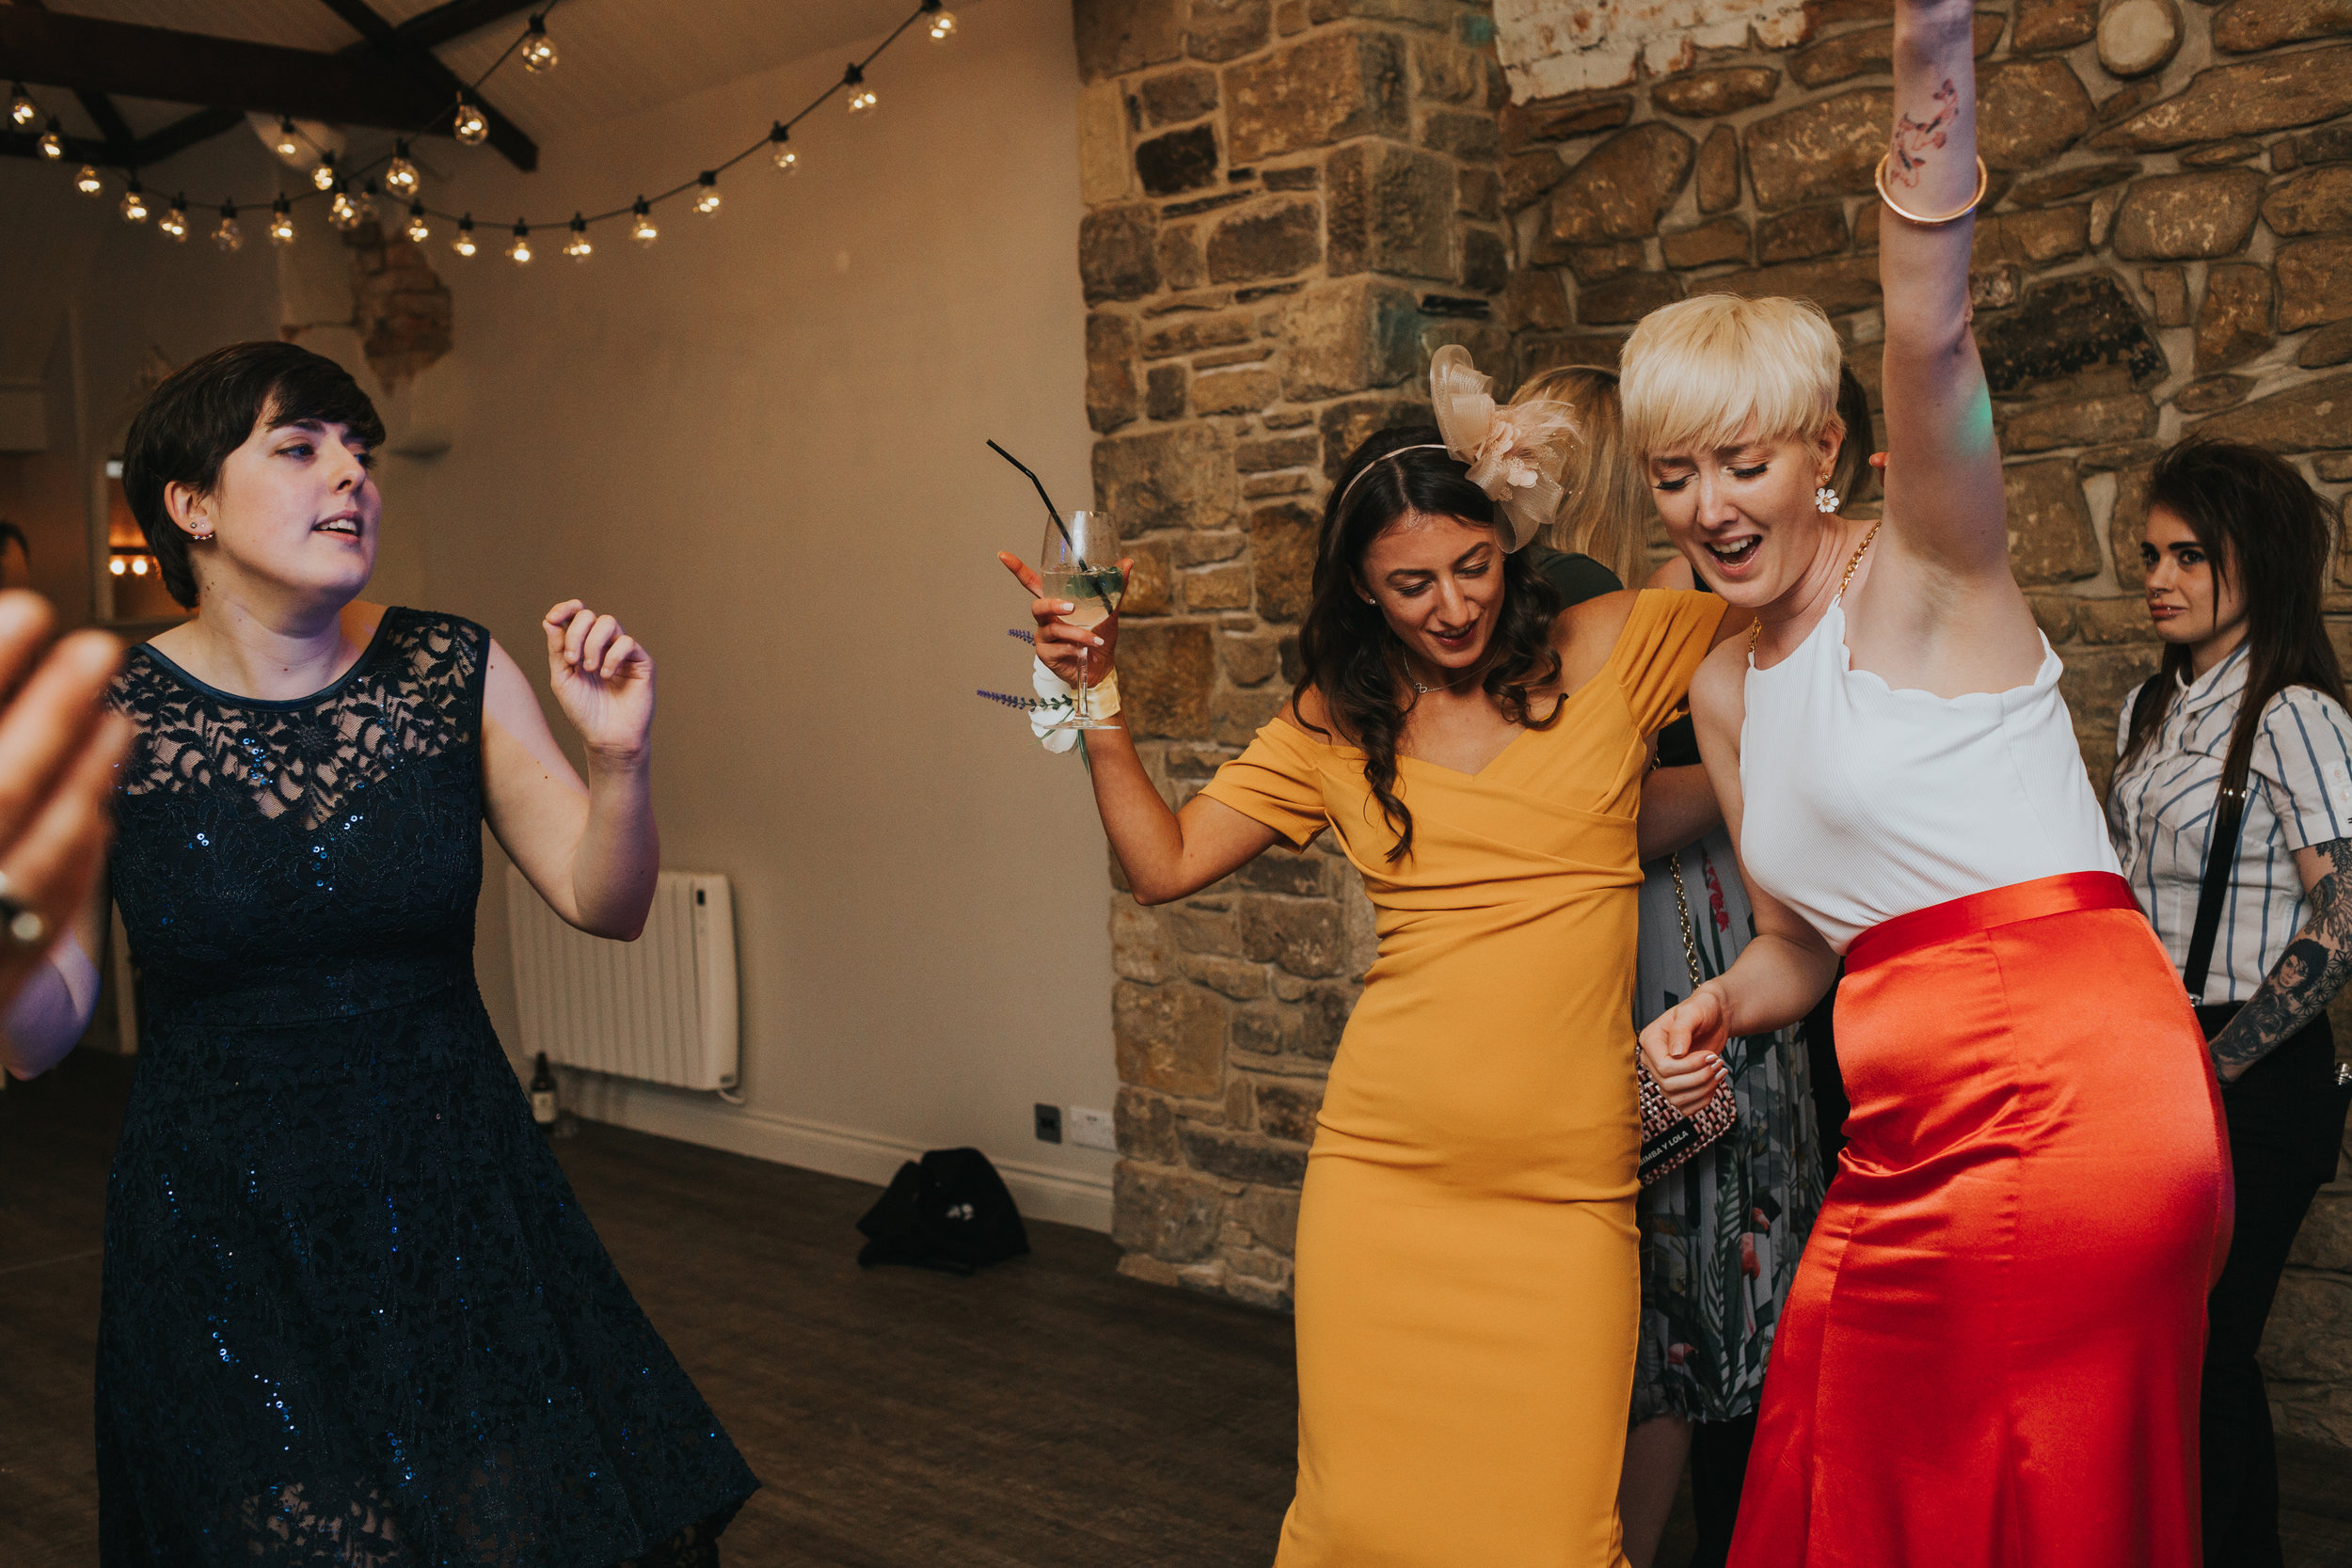 The bride dances with her friends.